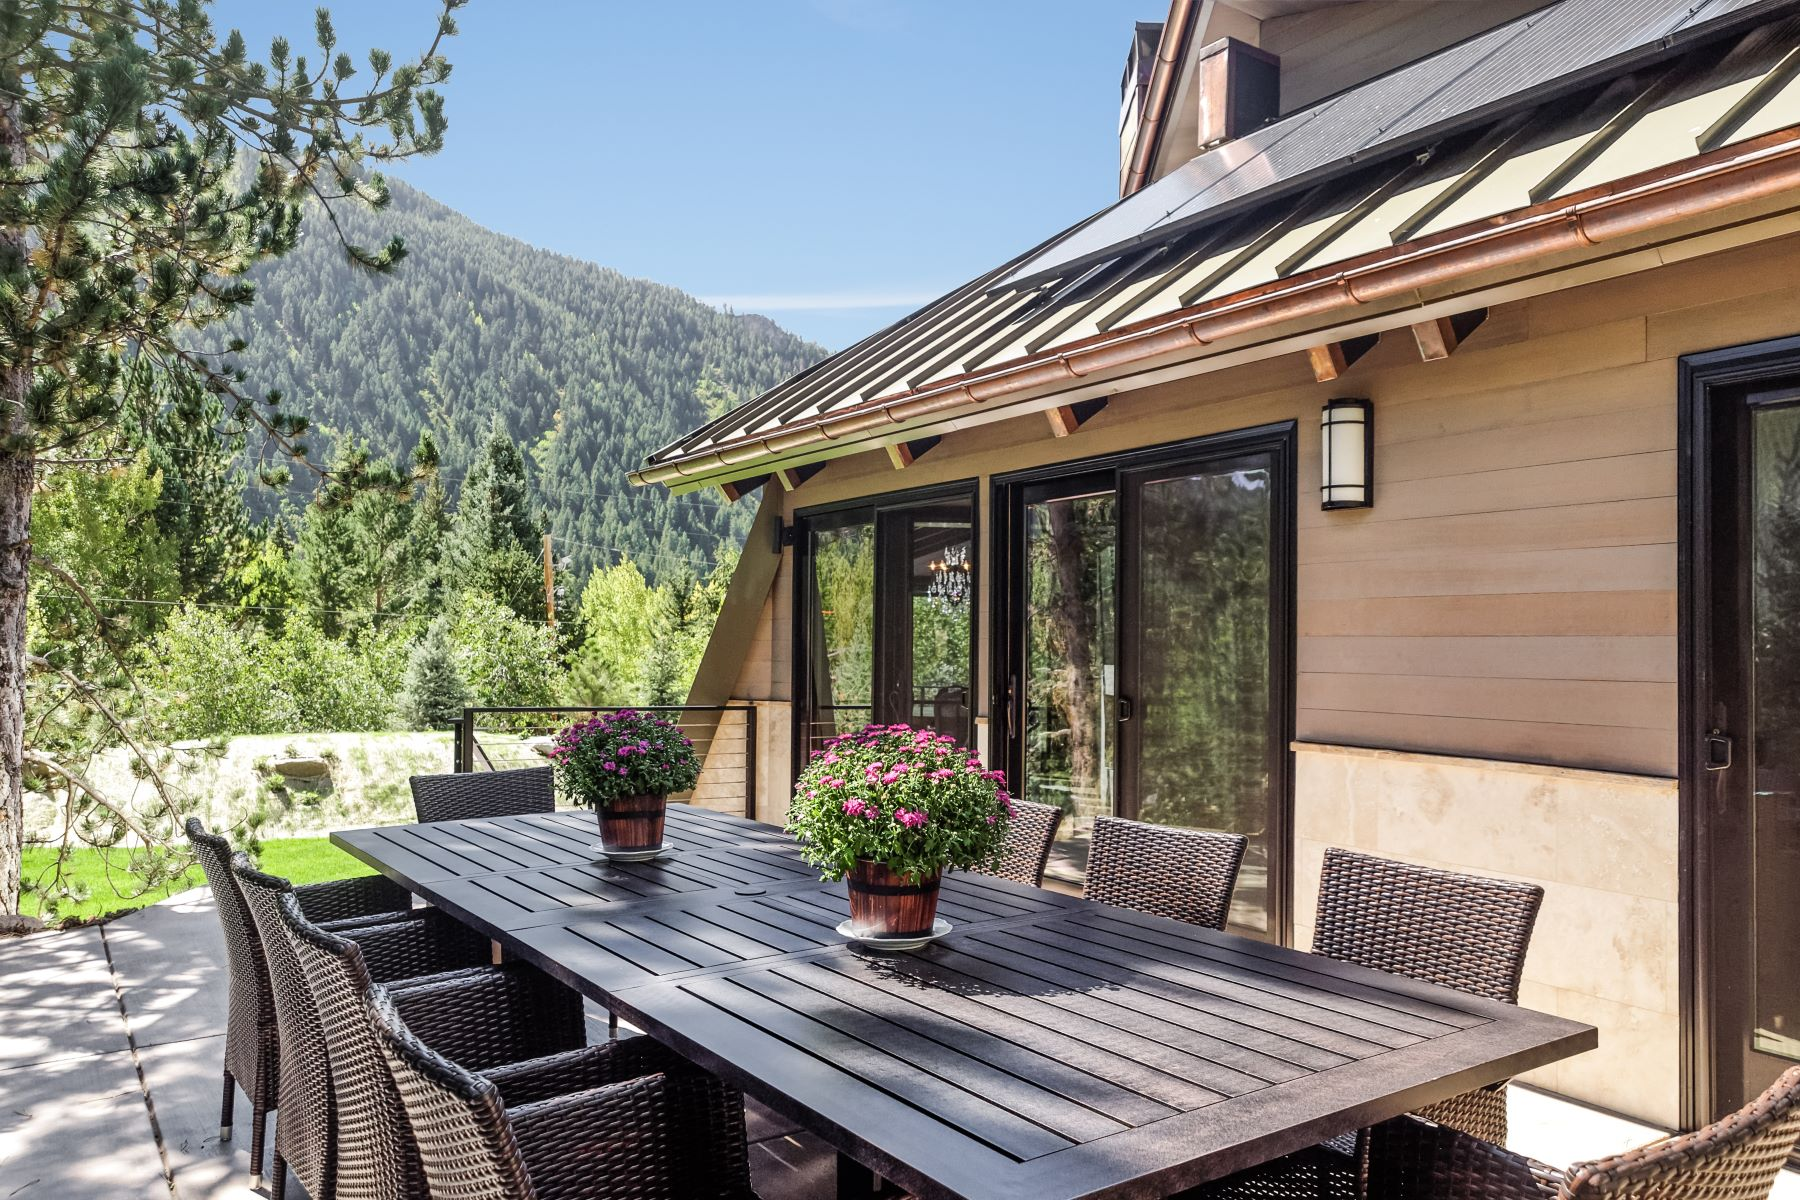 Additional photo for property listing at Exquisite Mountain Contemporary 39 Roaring Fork Drive Aspen, Colorado 81611 United States